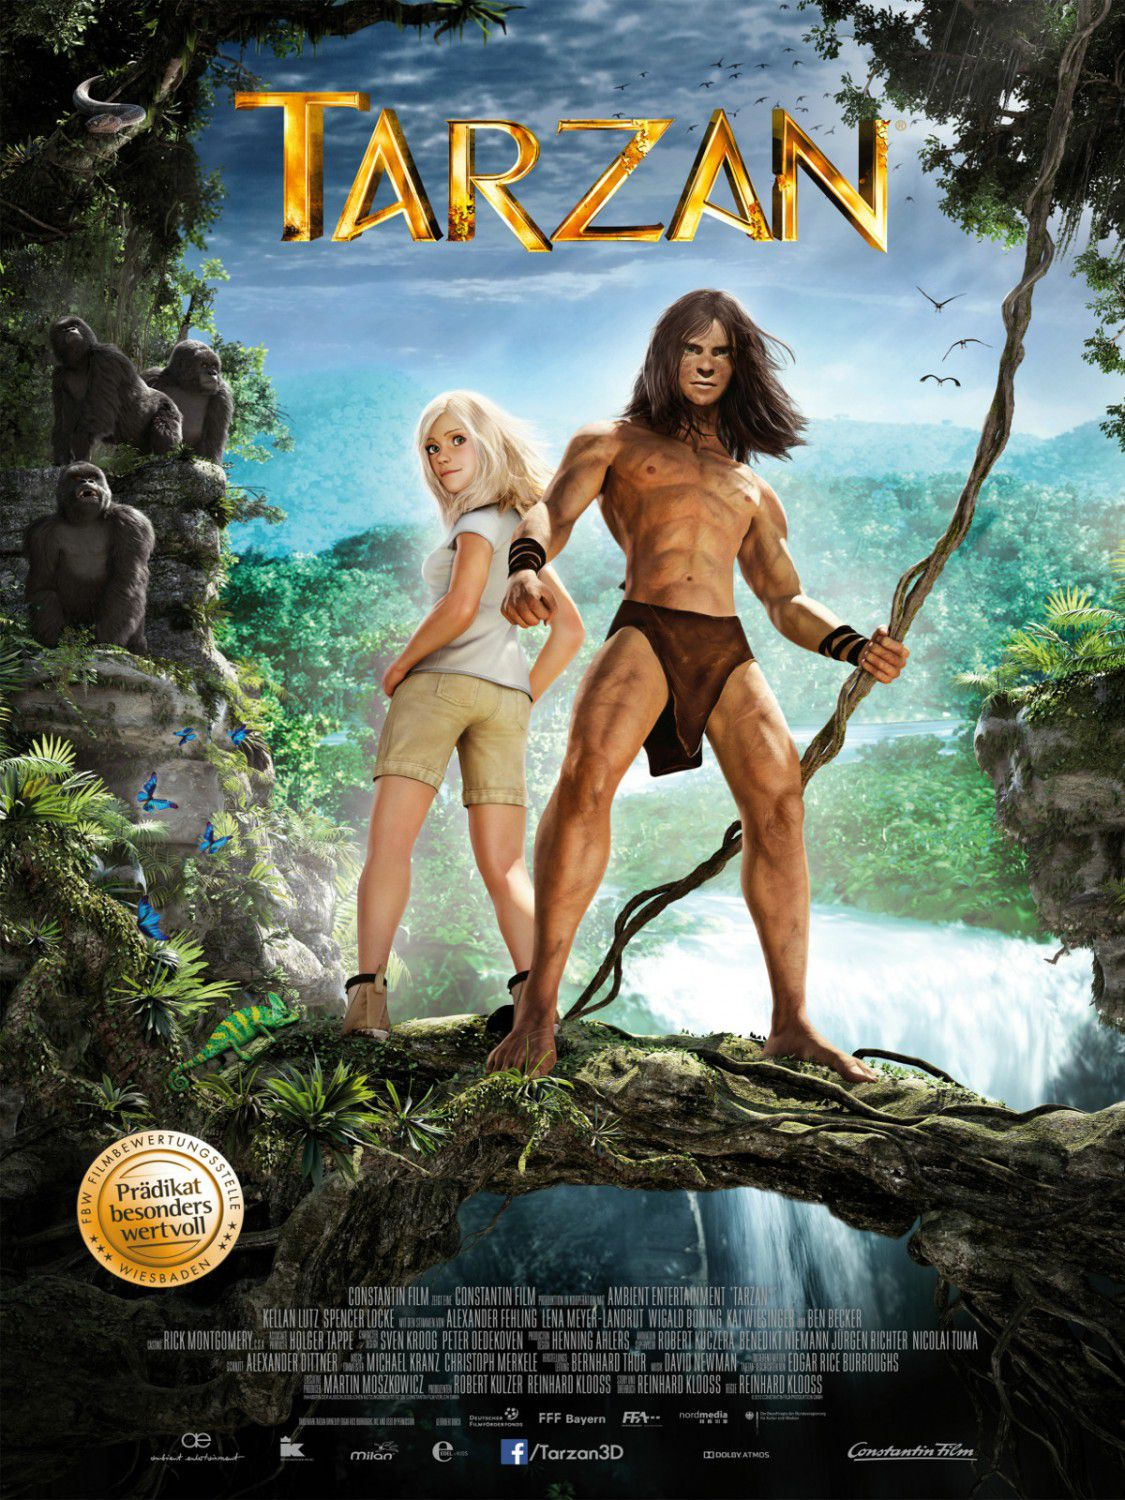 Tarzan (2013) animated